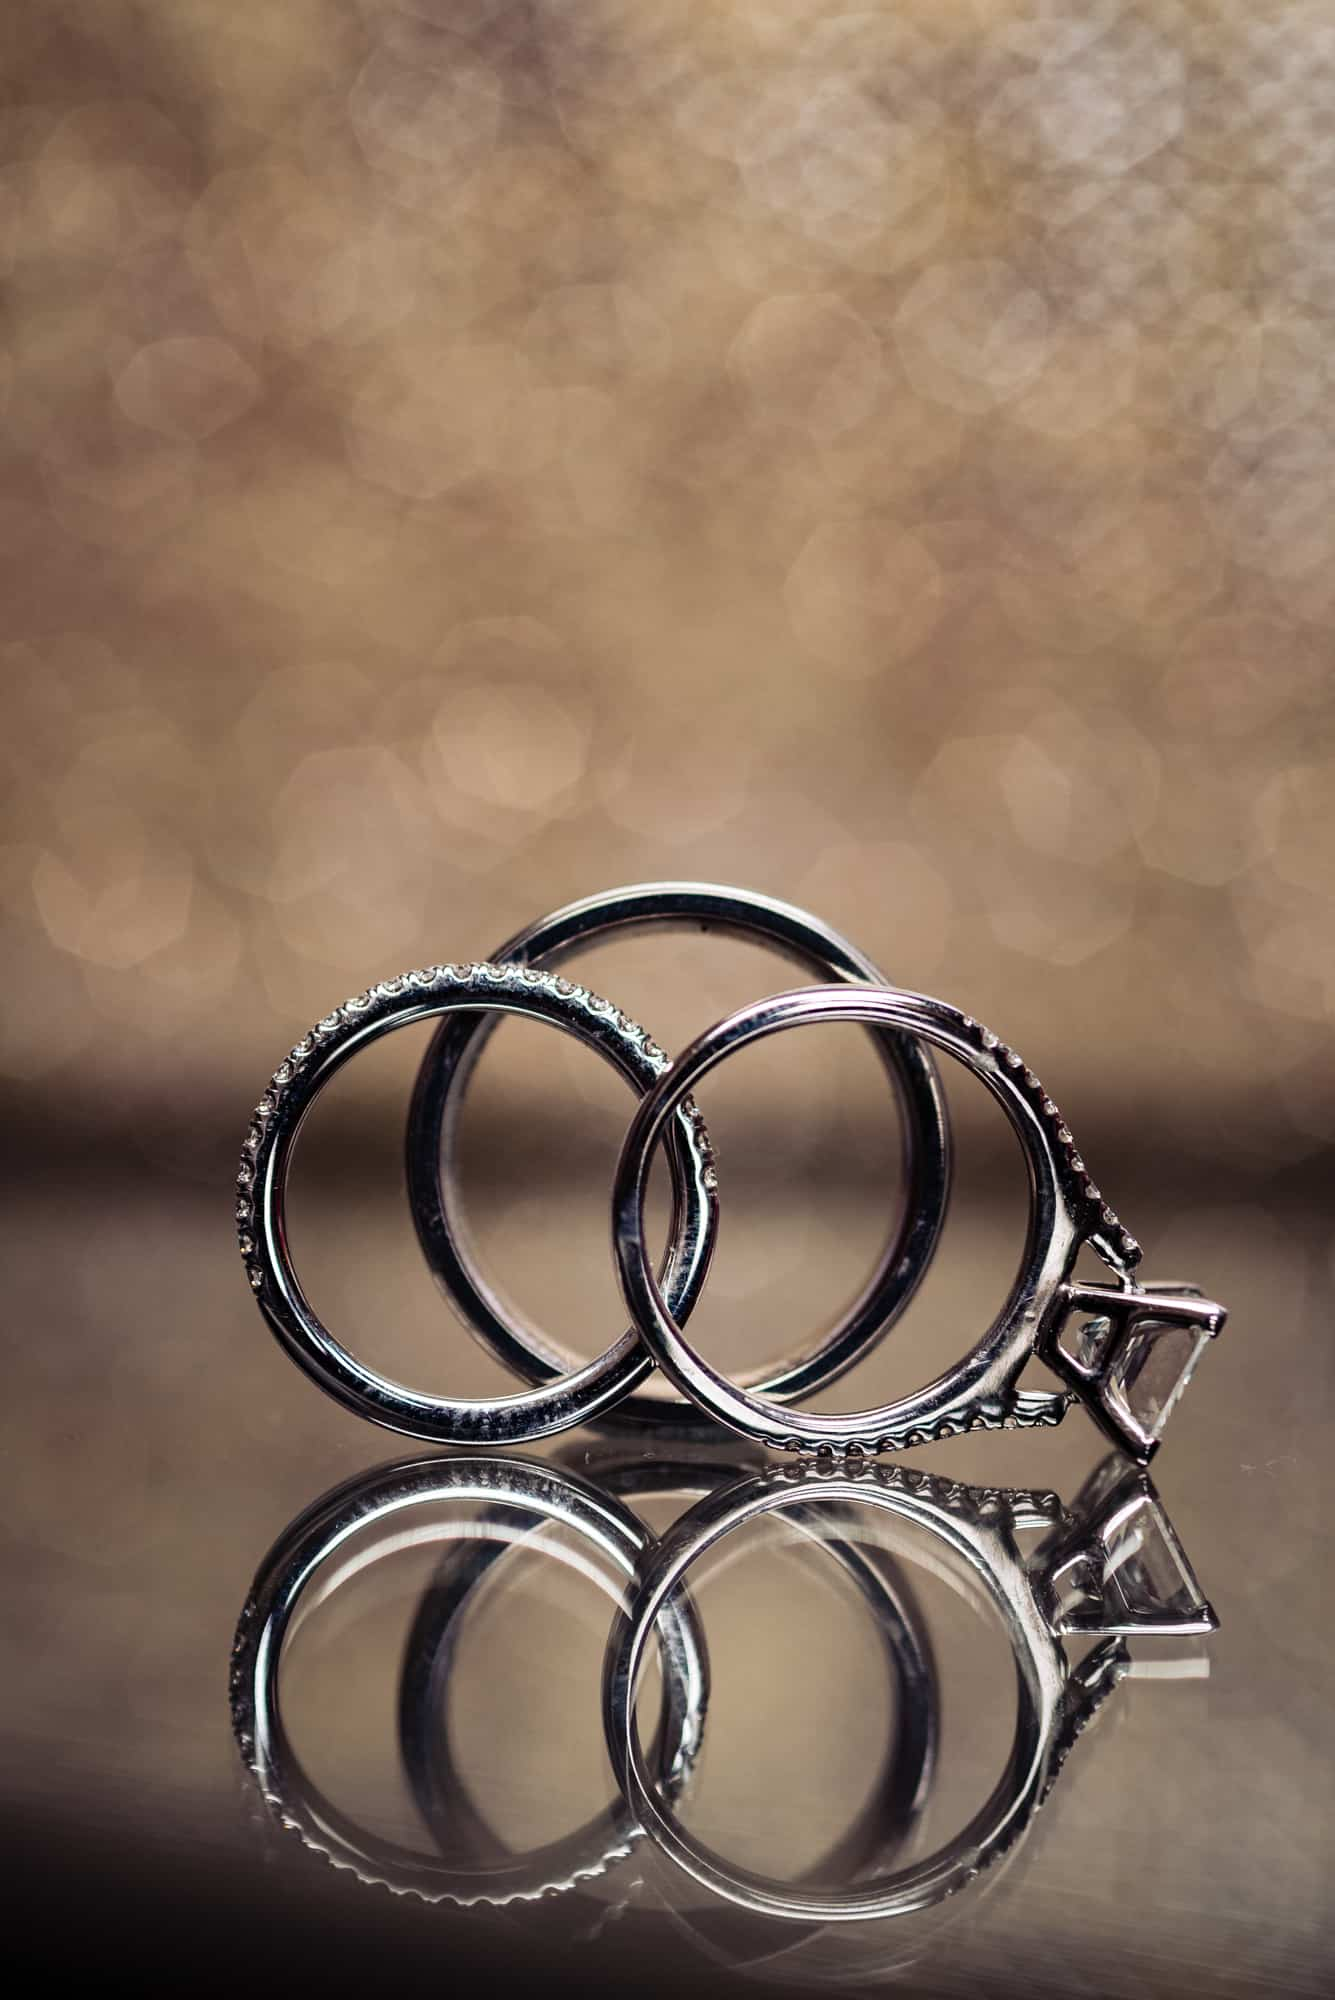 Closeup image of wedding rings at a Hotel Dupont Wedding